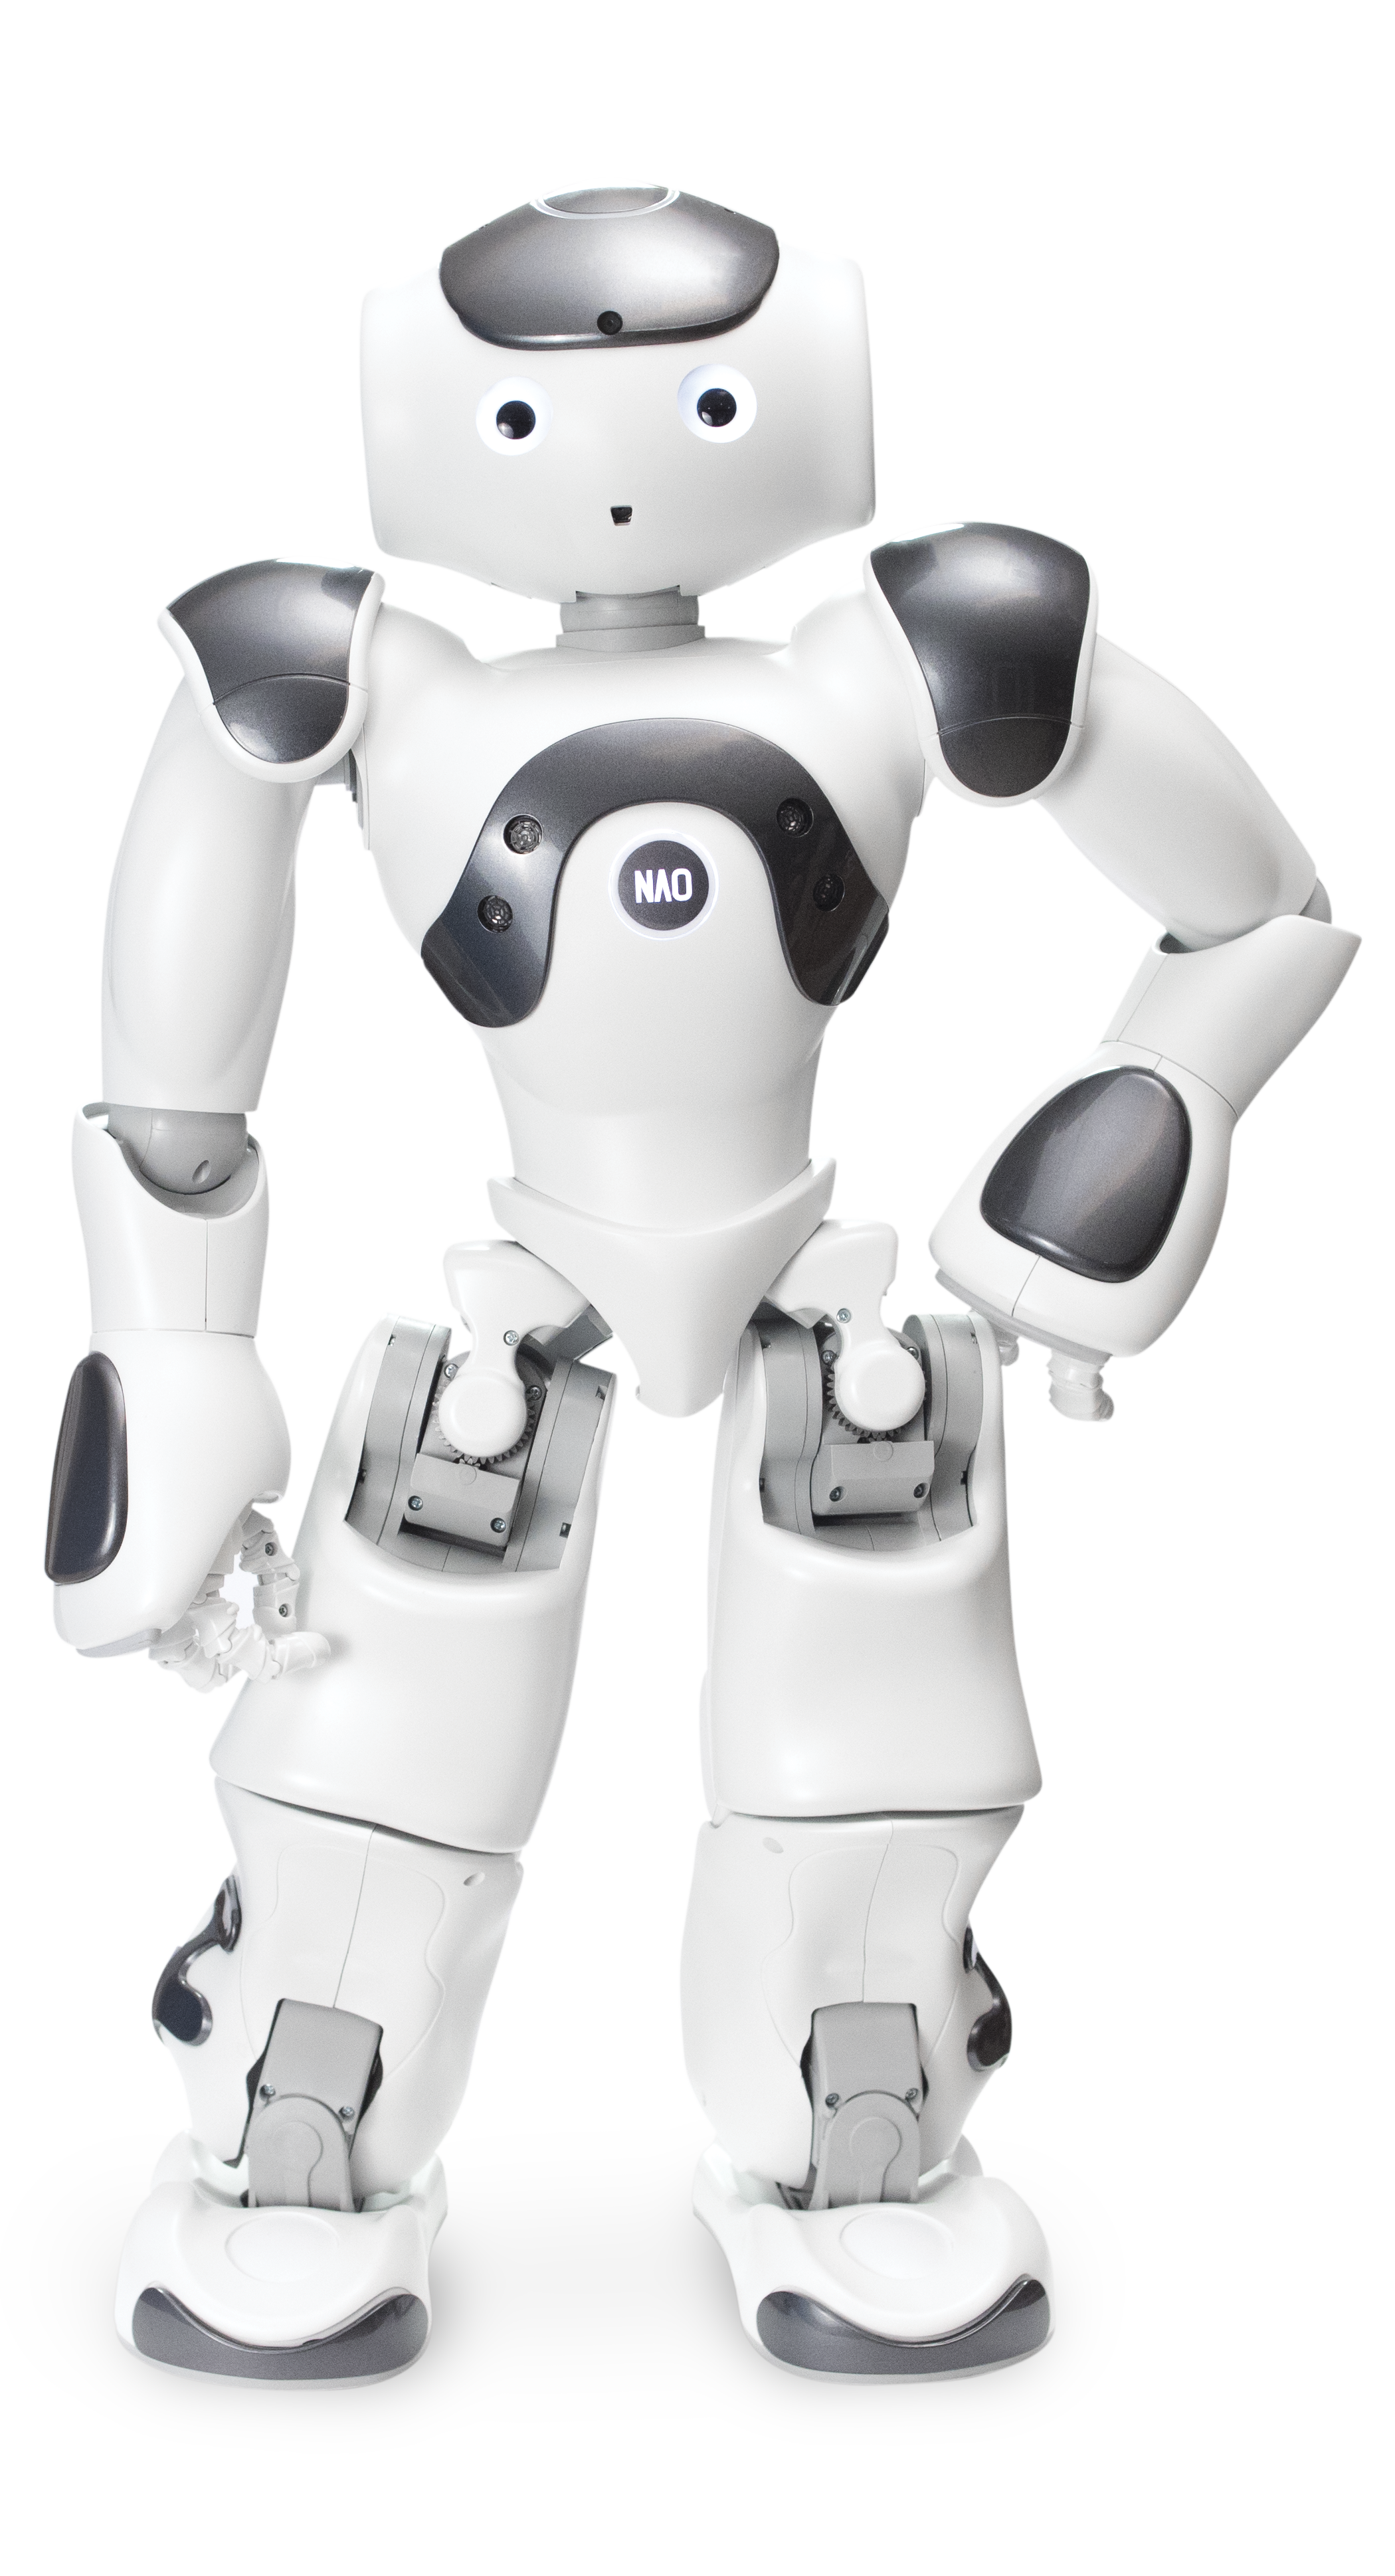 Award Winning Educational Robotics Programs That Are Smart